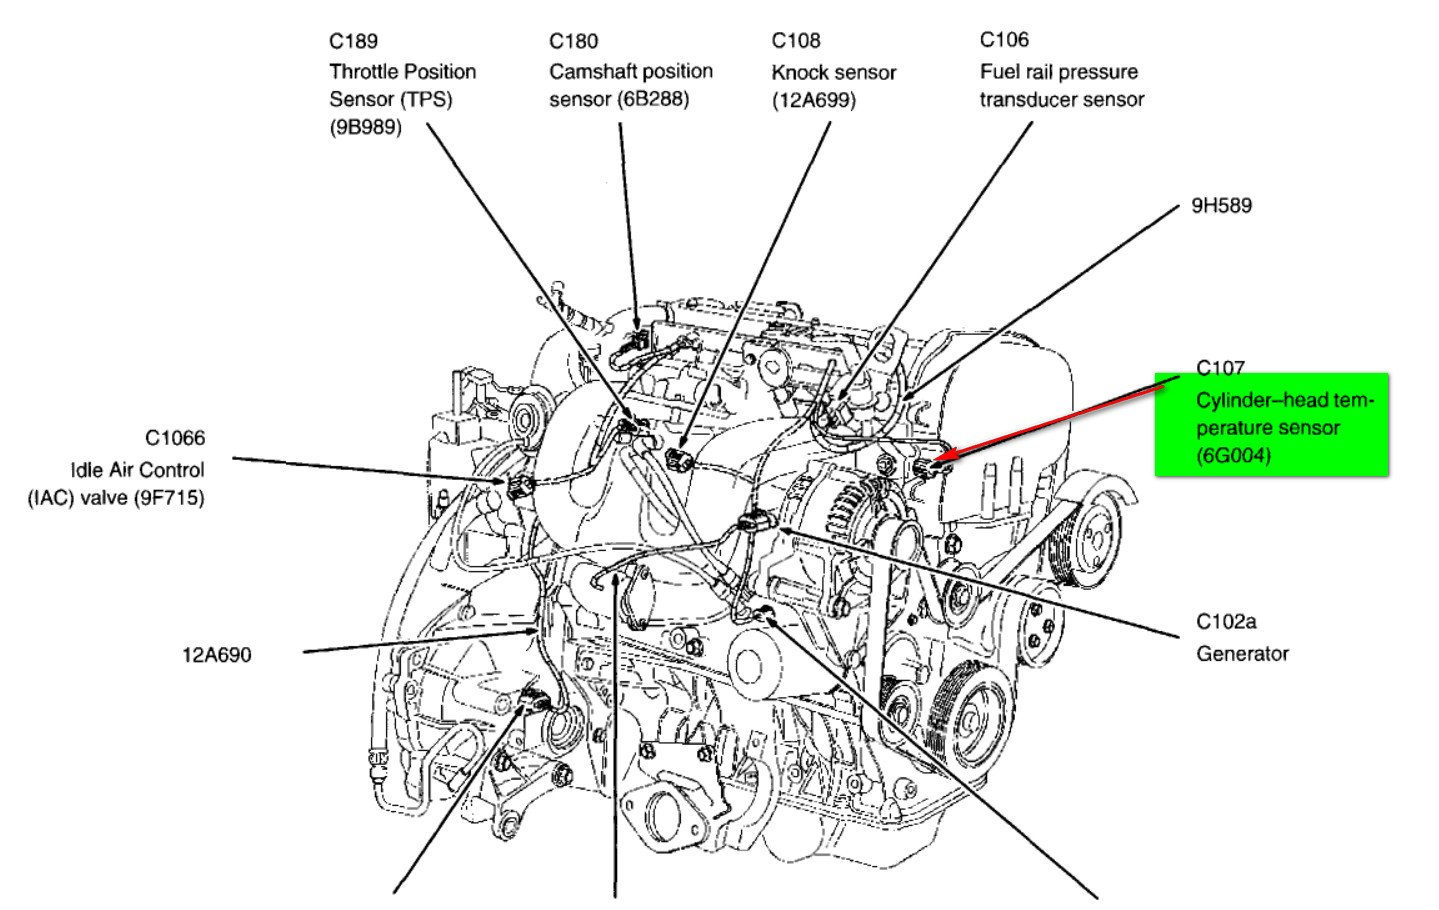 6m5o3 Ford Focus Se Temperature Sensor Sends as well Series 60 Engine Oil Temperature Sensor also 2001 Buick Lesabre Cooling System Diagram together with 38k3b Can T Find Location Cooling Fan Switch 1992 together with Discussion C178 ds557781. on engine coolant temperature sensor location